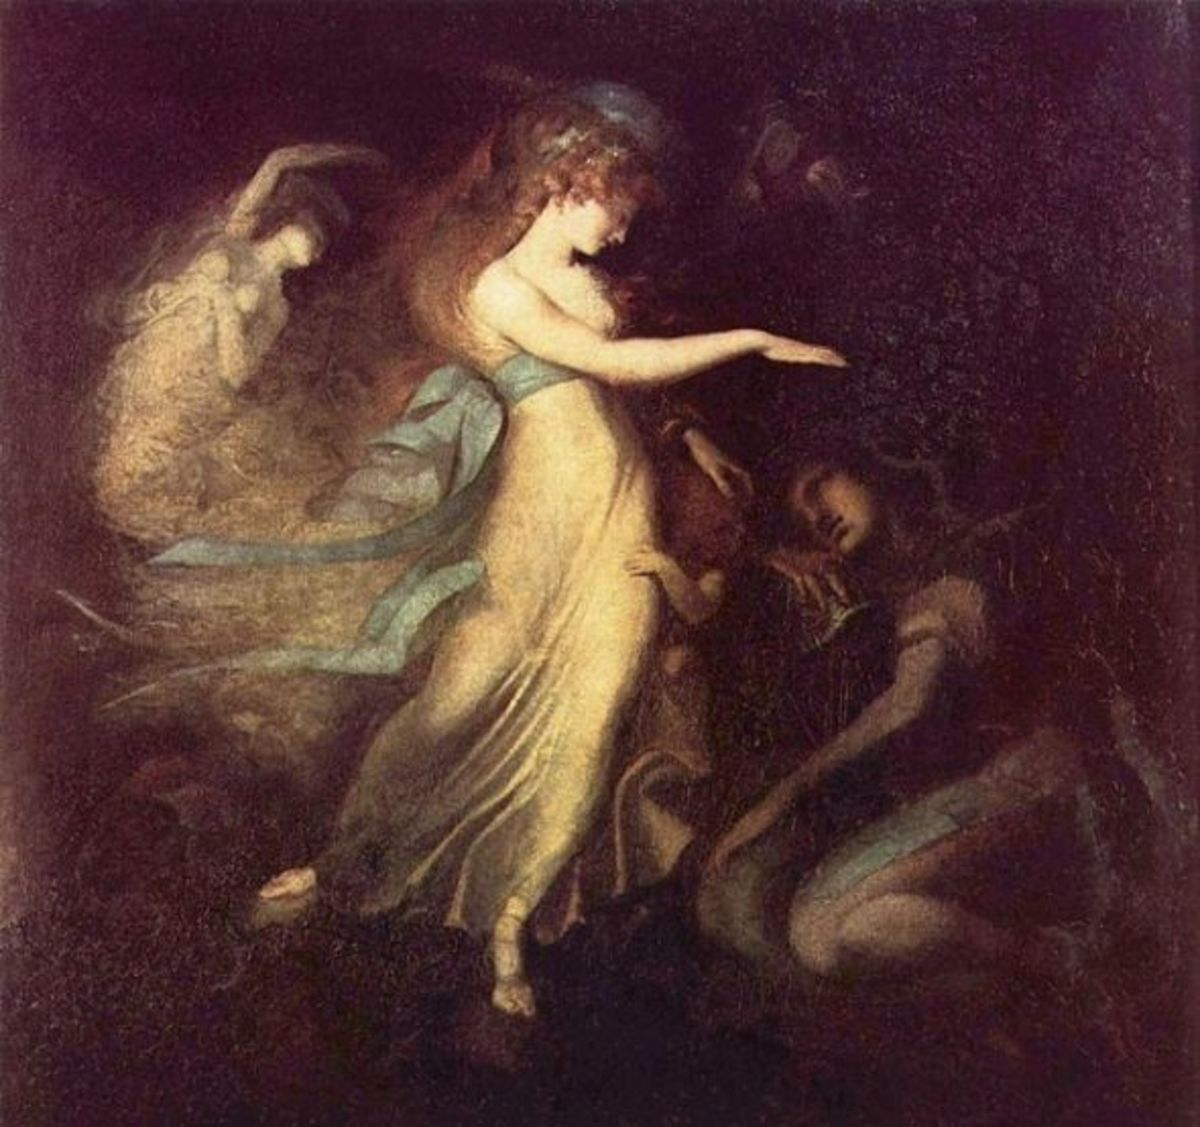 Prinz Arthur And The Fairy Queen by Henry Fuseli found on Wikipedia